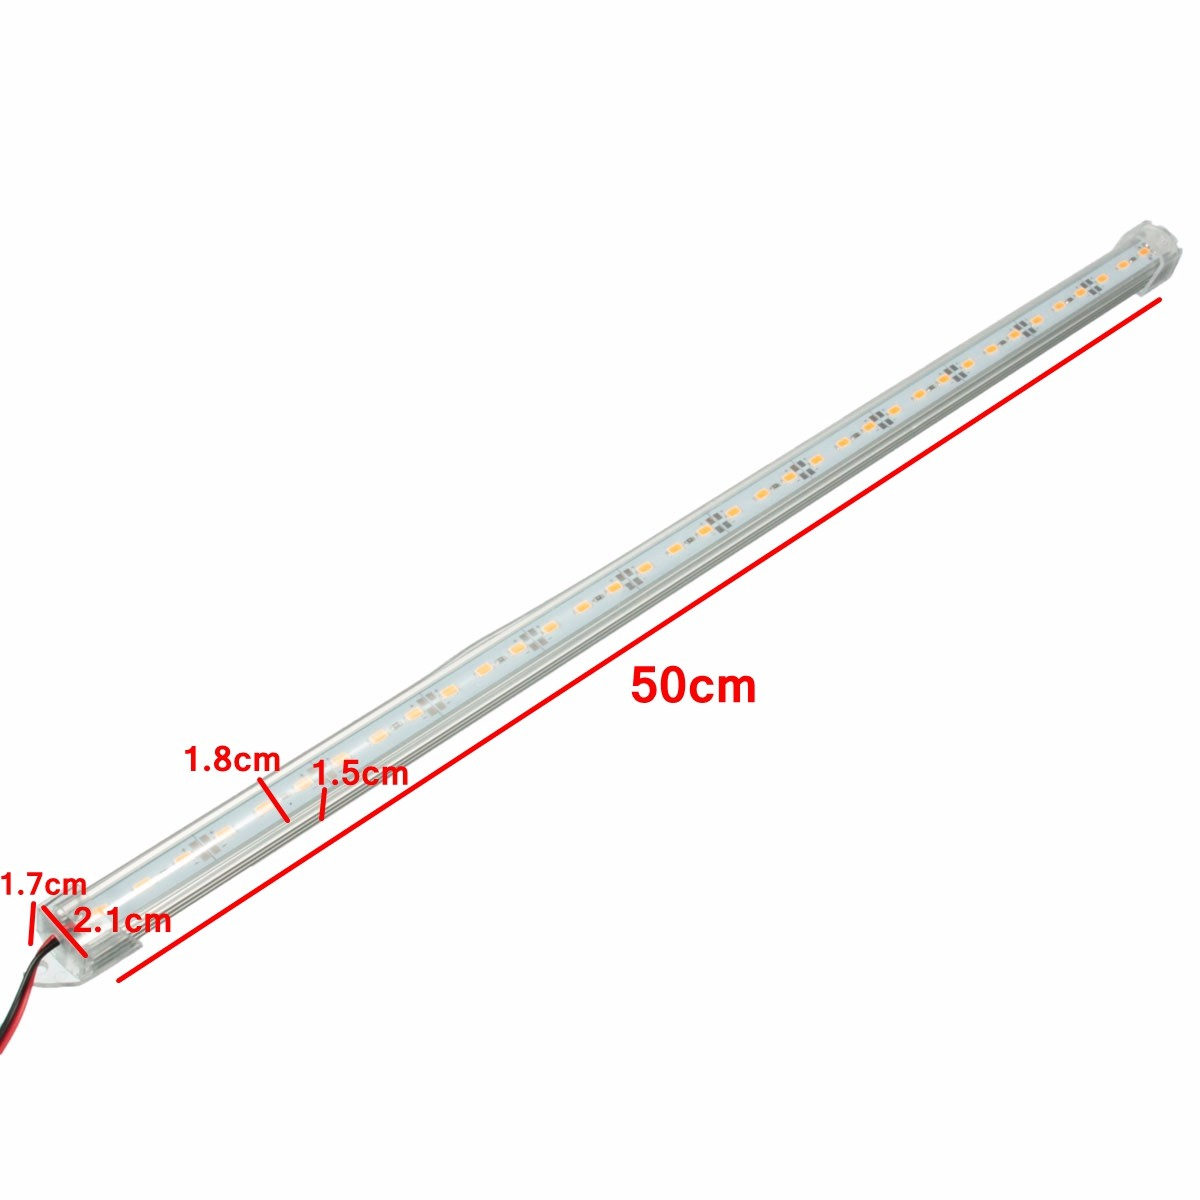 12v 50cm Car Clear Led Smd Interior Strip Light Bar Van Caravan Fish Tank Sale